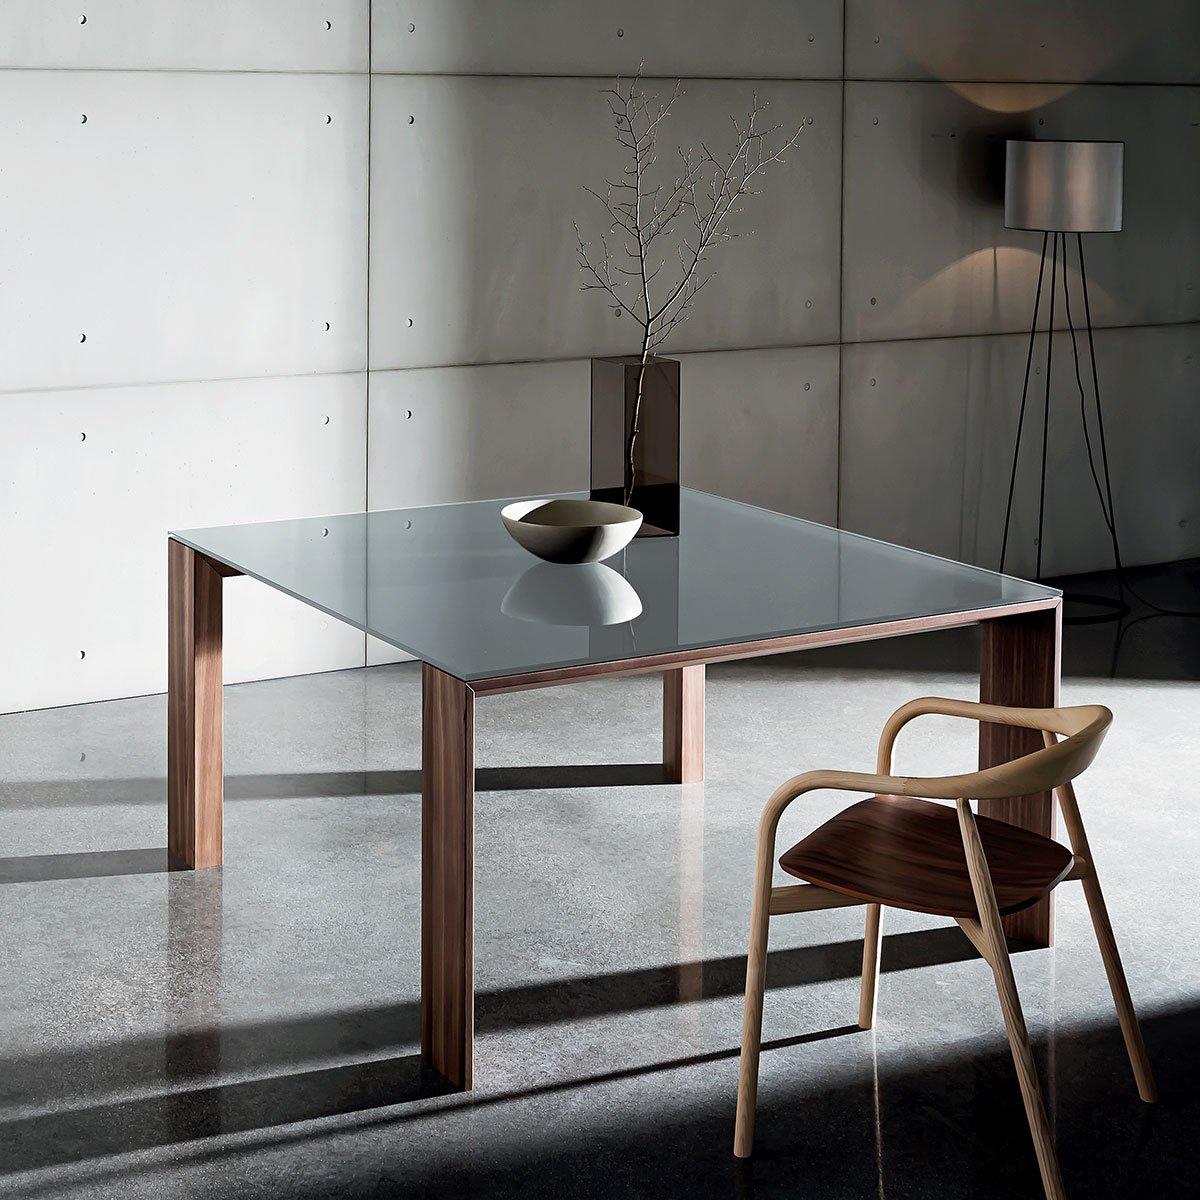 glass dining table toronto wooden dining table with glass top toronto dining table wooden. Black Bedroom Furniture Sets. Home Design Ideas